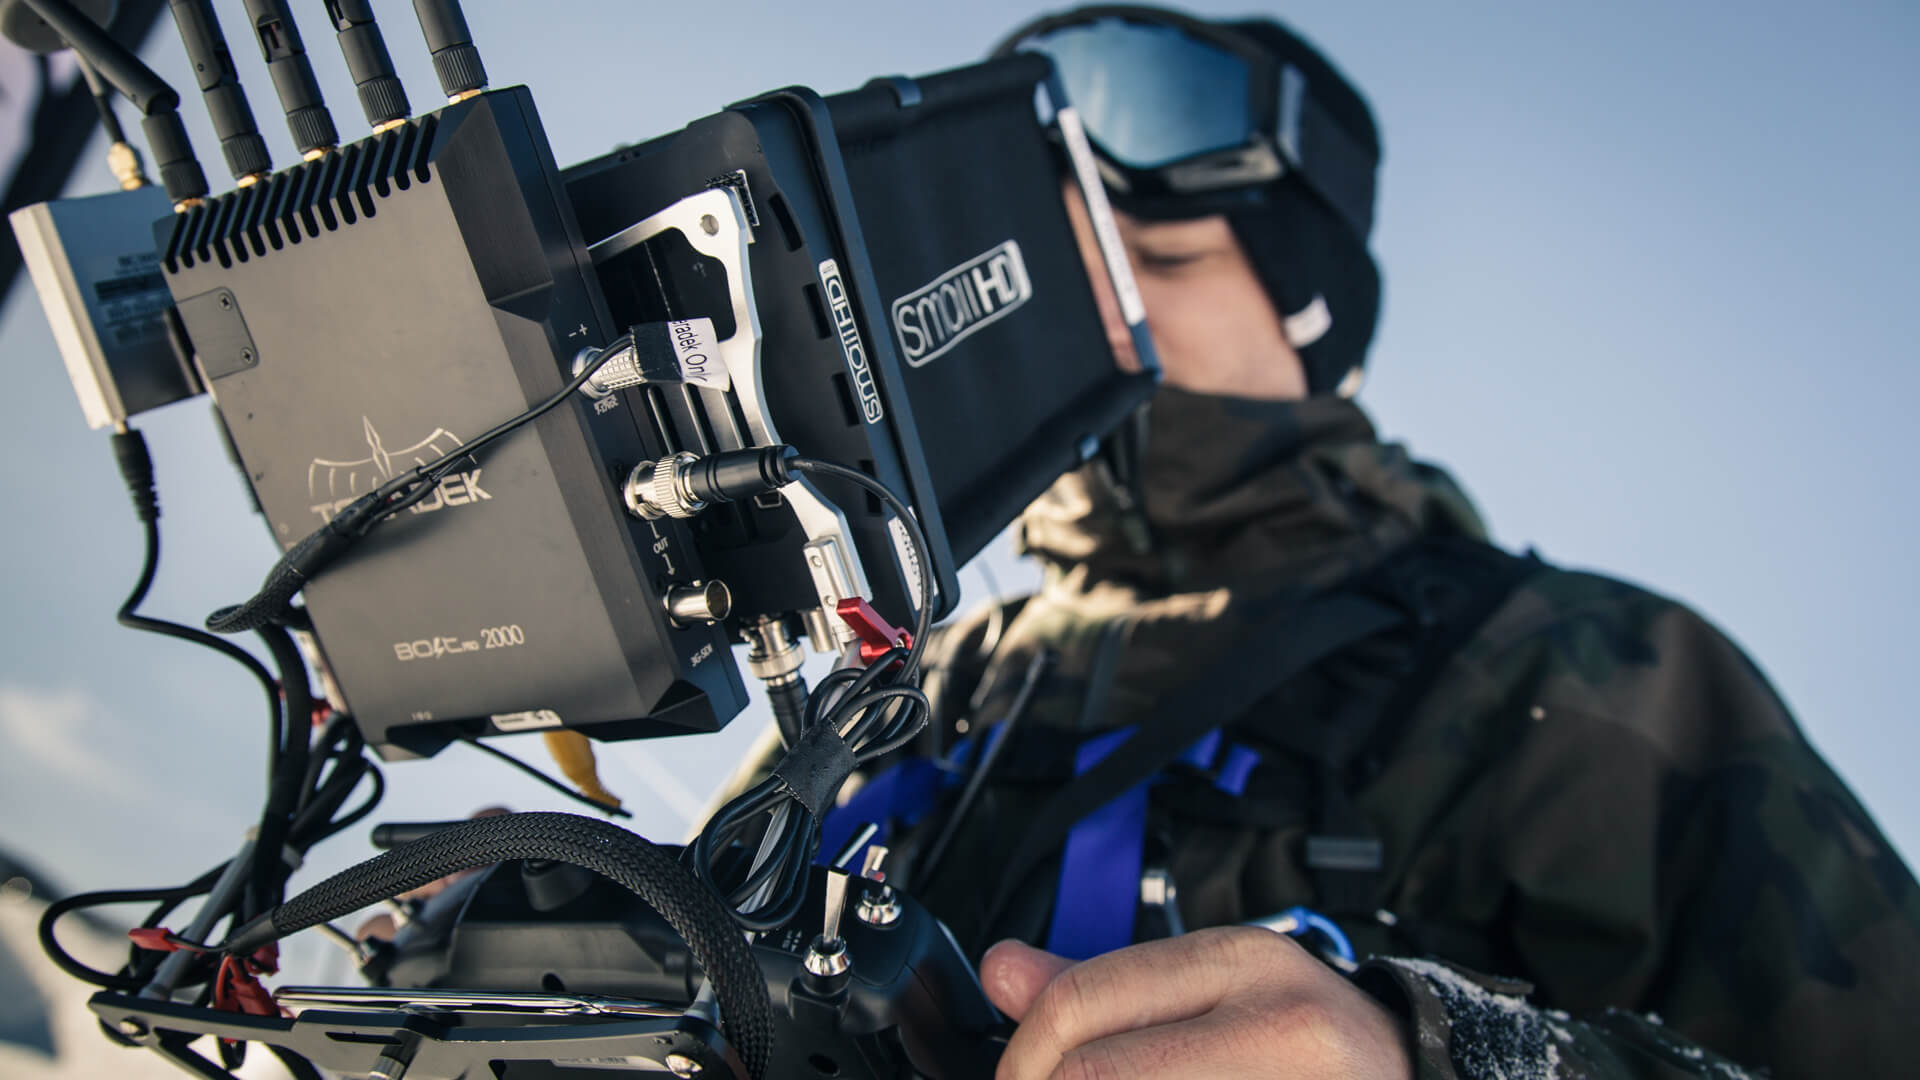 MoVI Operator Sam Nuttmann - Colorado - Red Bull Moments - dual operator using the Teradek Bolt